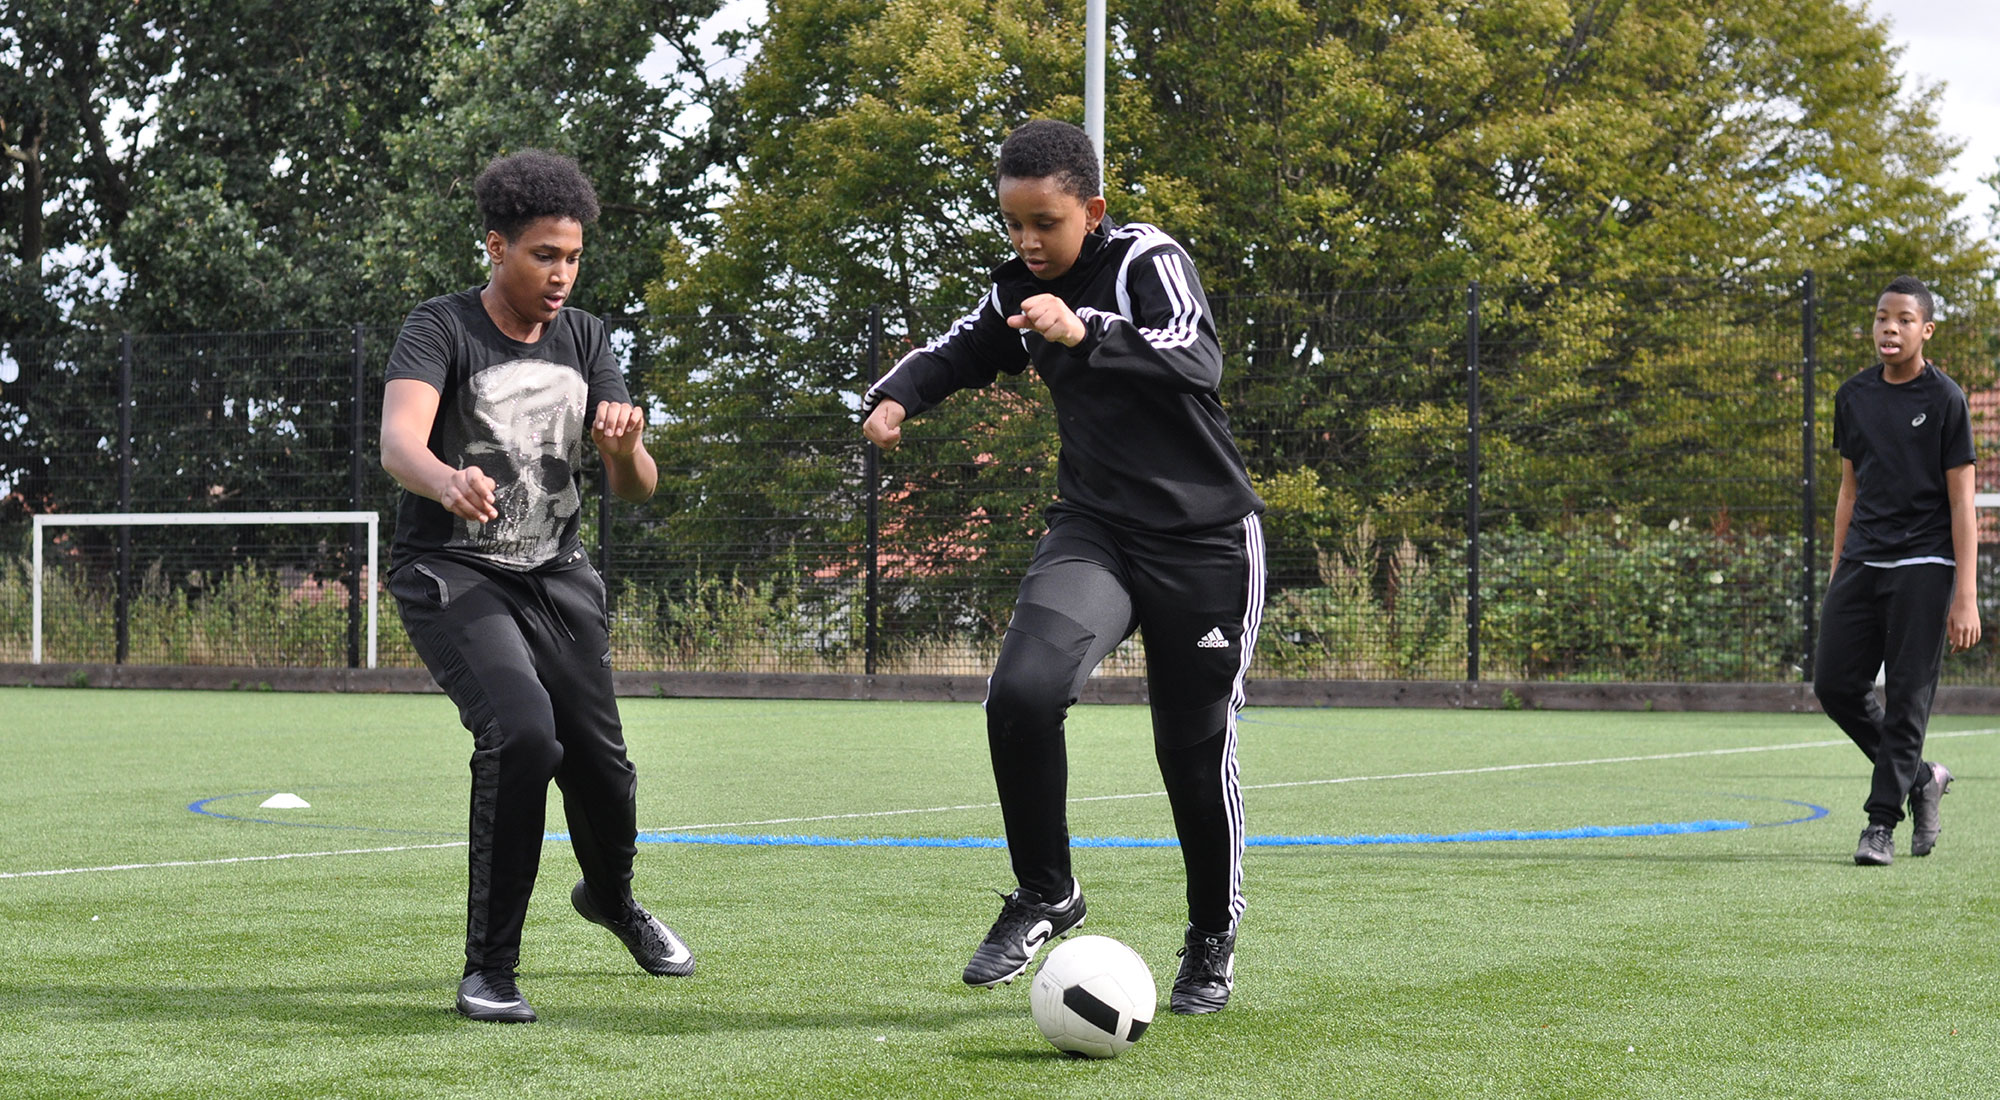 ukactive and Sported receive GLA grant to expand Open Doors programme for vulnerable young people in London